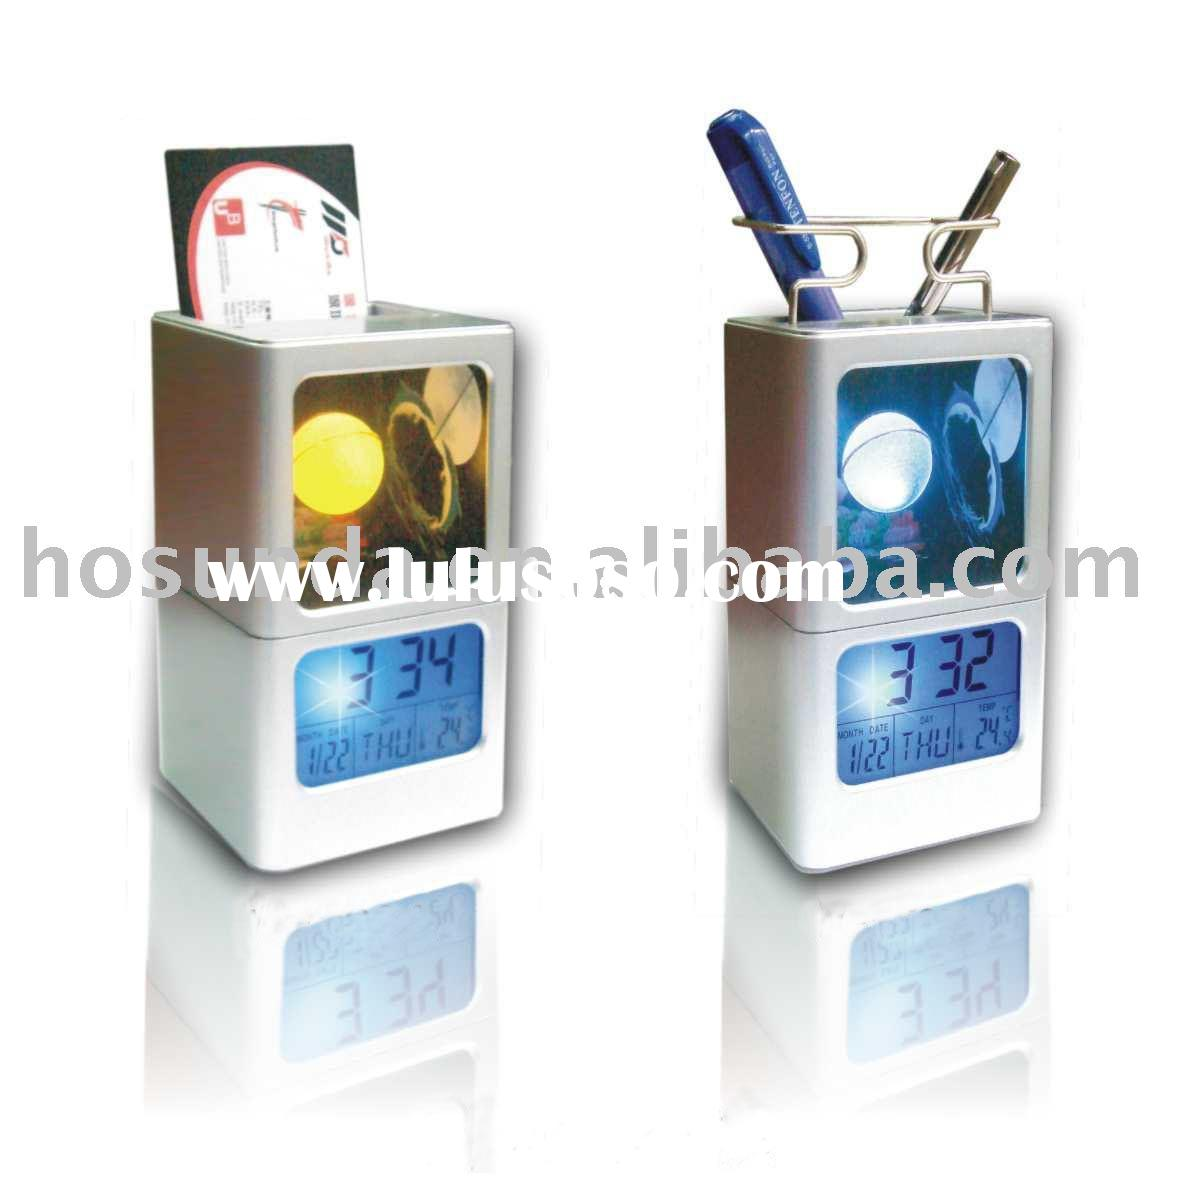 pen holder alarm clock/digital promotion clock/desk clock